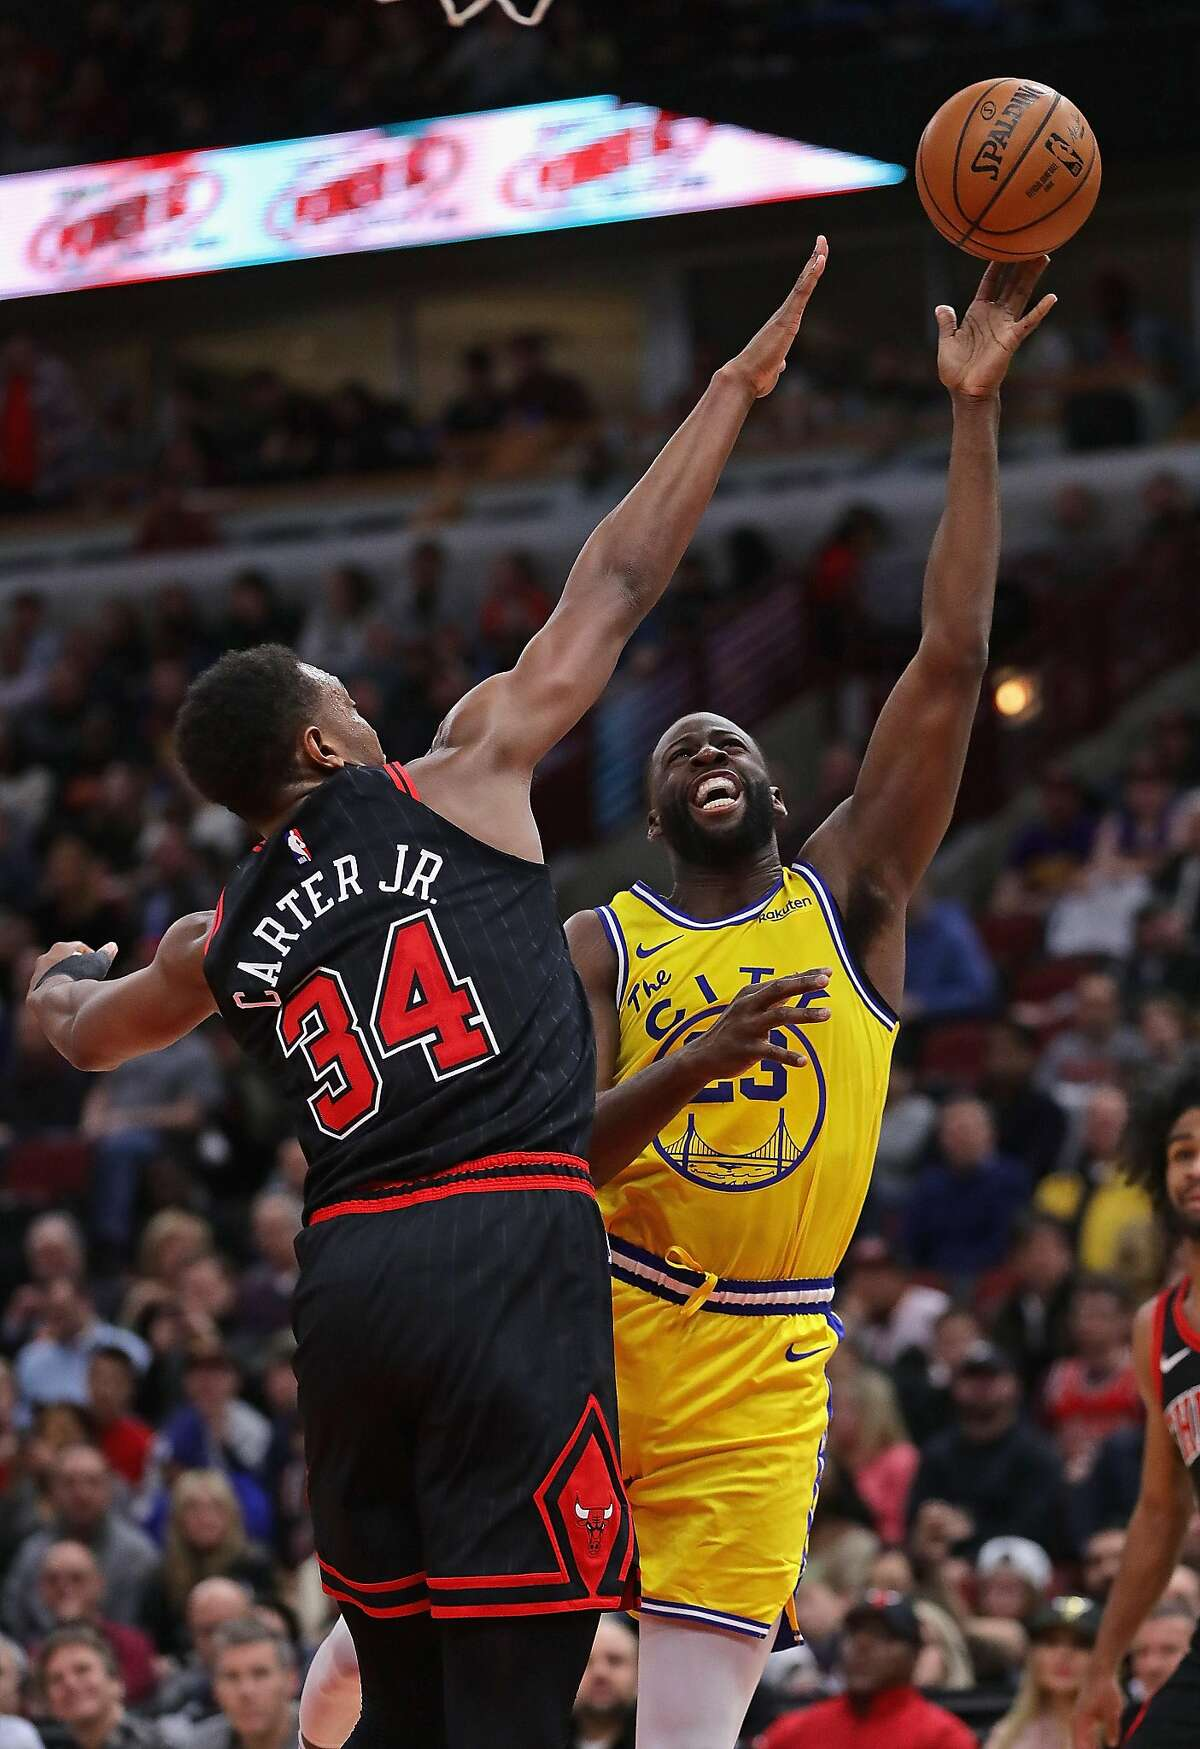 Draymond Green #23 of the Golden State Warriors shoots against Wendell Carter Jr. #34 of the Chicago Bulls at United Center on December 06, 2019 in Chicago, Illinois. The Warriors defeated the Bulls 100-98. NOTE TO USER: User expressly acknowledges and agrees that , by downloading and or using this photograph, User is consenting to the terms and conditions of the Getty Images License Agreement.